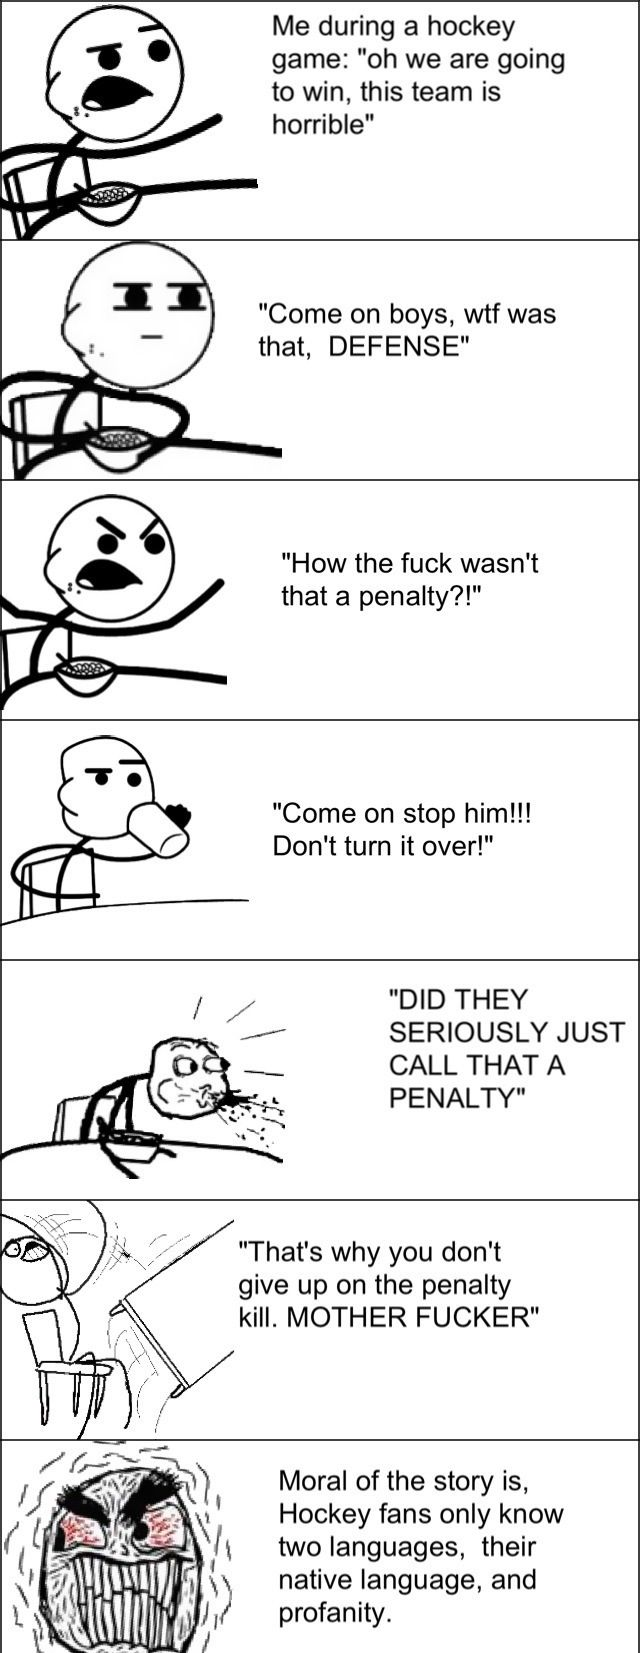 I do this all the time watching games, this is literally what i say haha